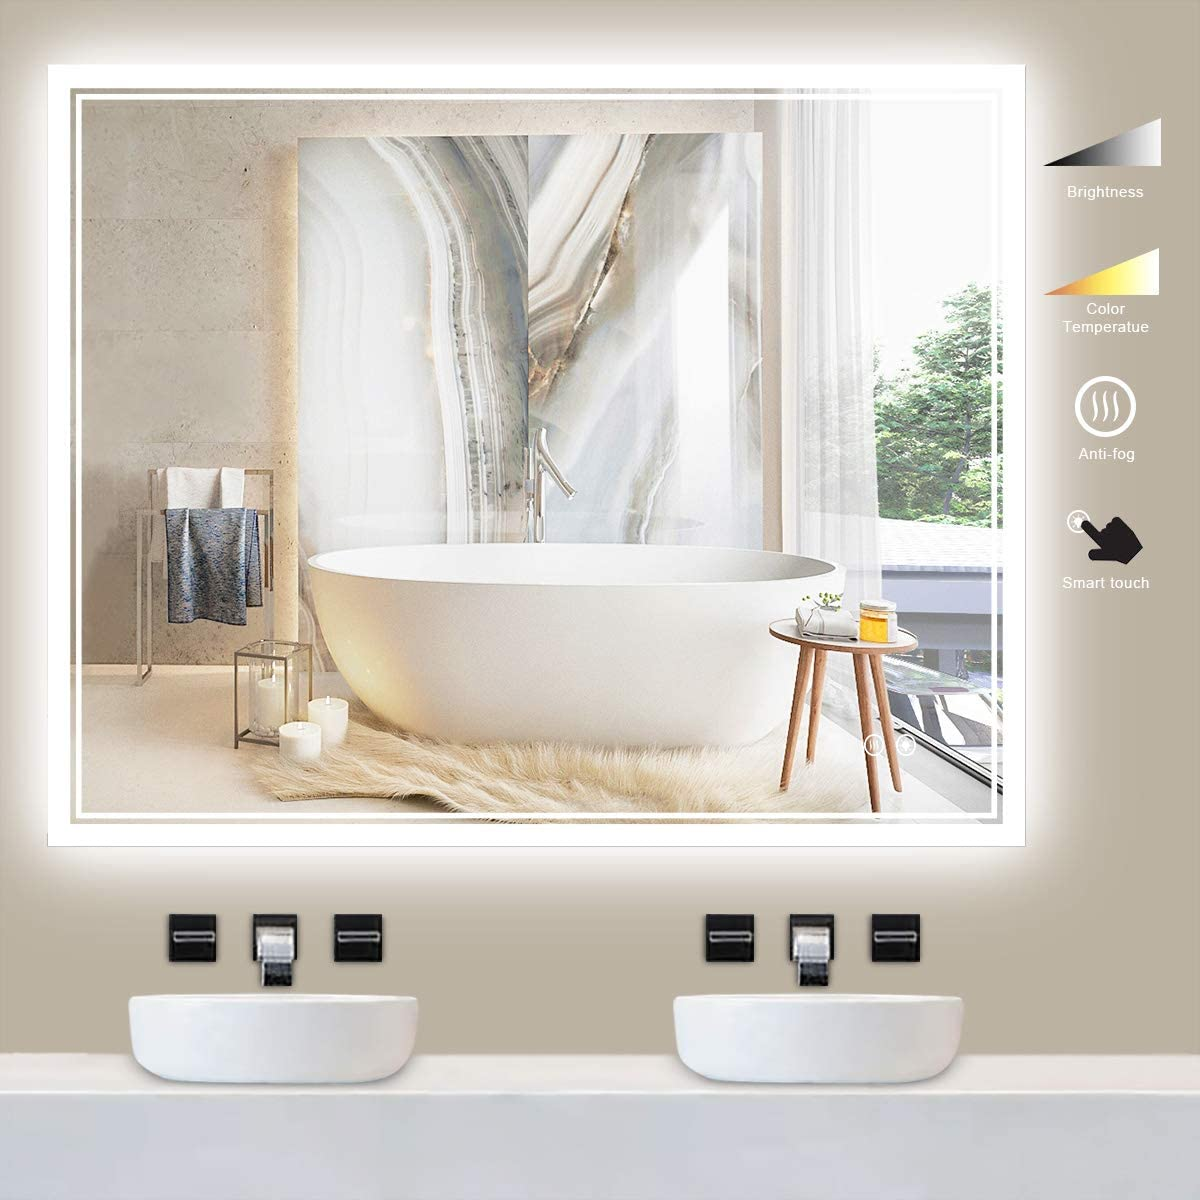 TokeShimi 40x32 Inch Bathroom LED Mirror,Fashion Style Vanity Make-up Mirror with Light,Anti-Fog & Dimmer Touch Switch,Adjustable Lights White/Warm/Natural, Wall Mounted